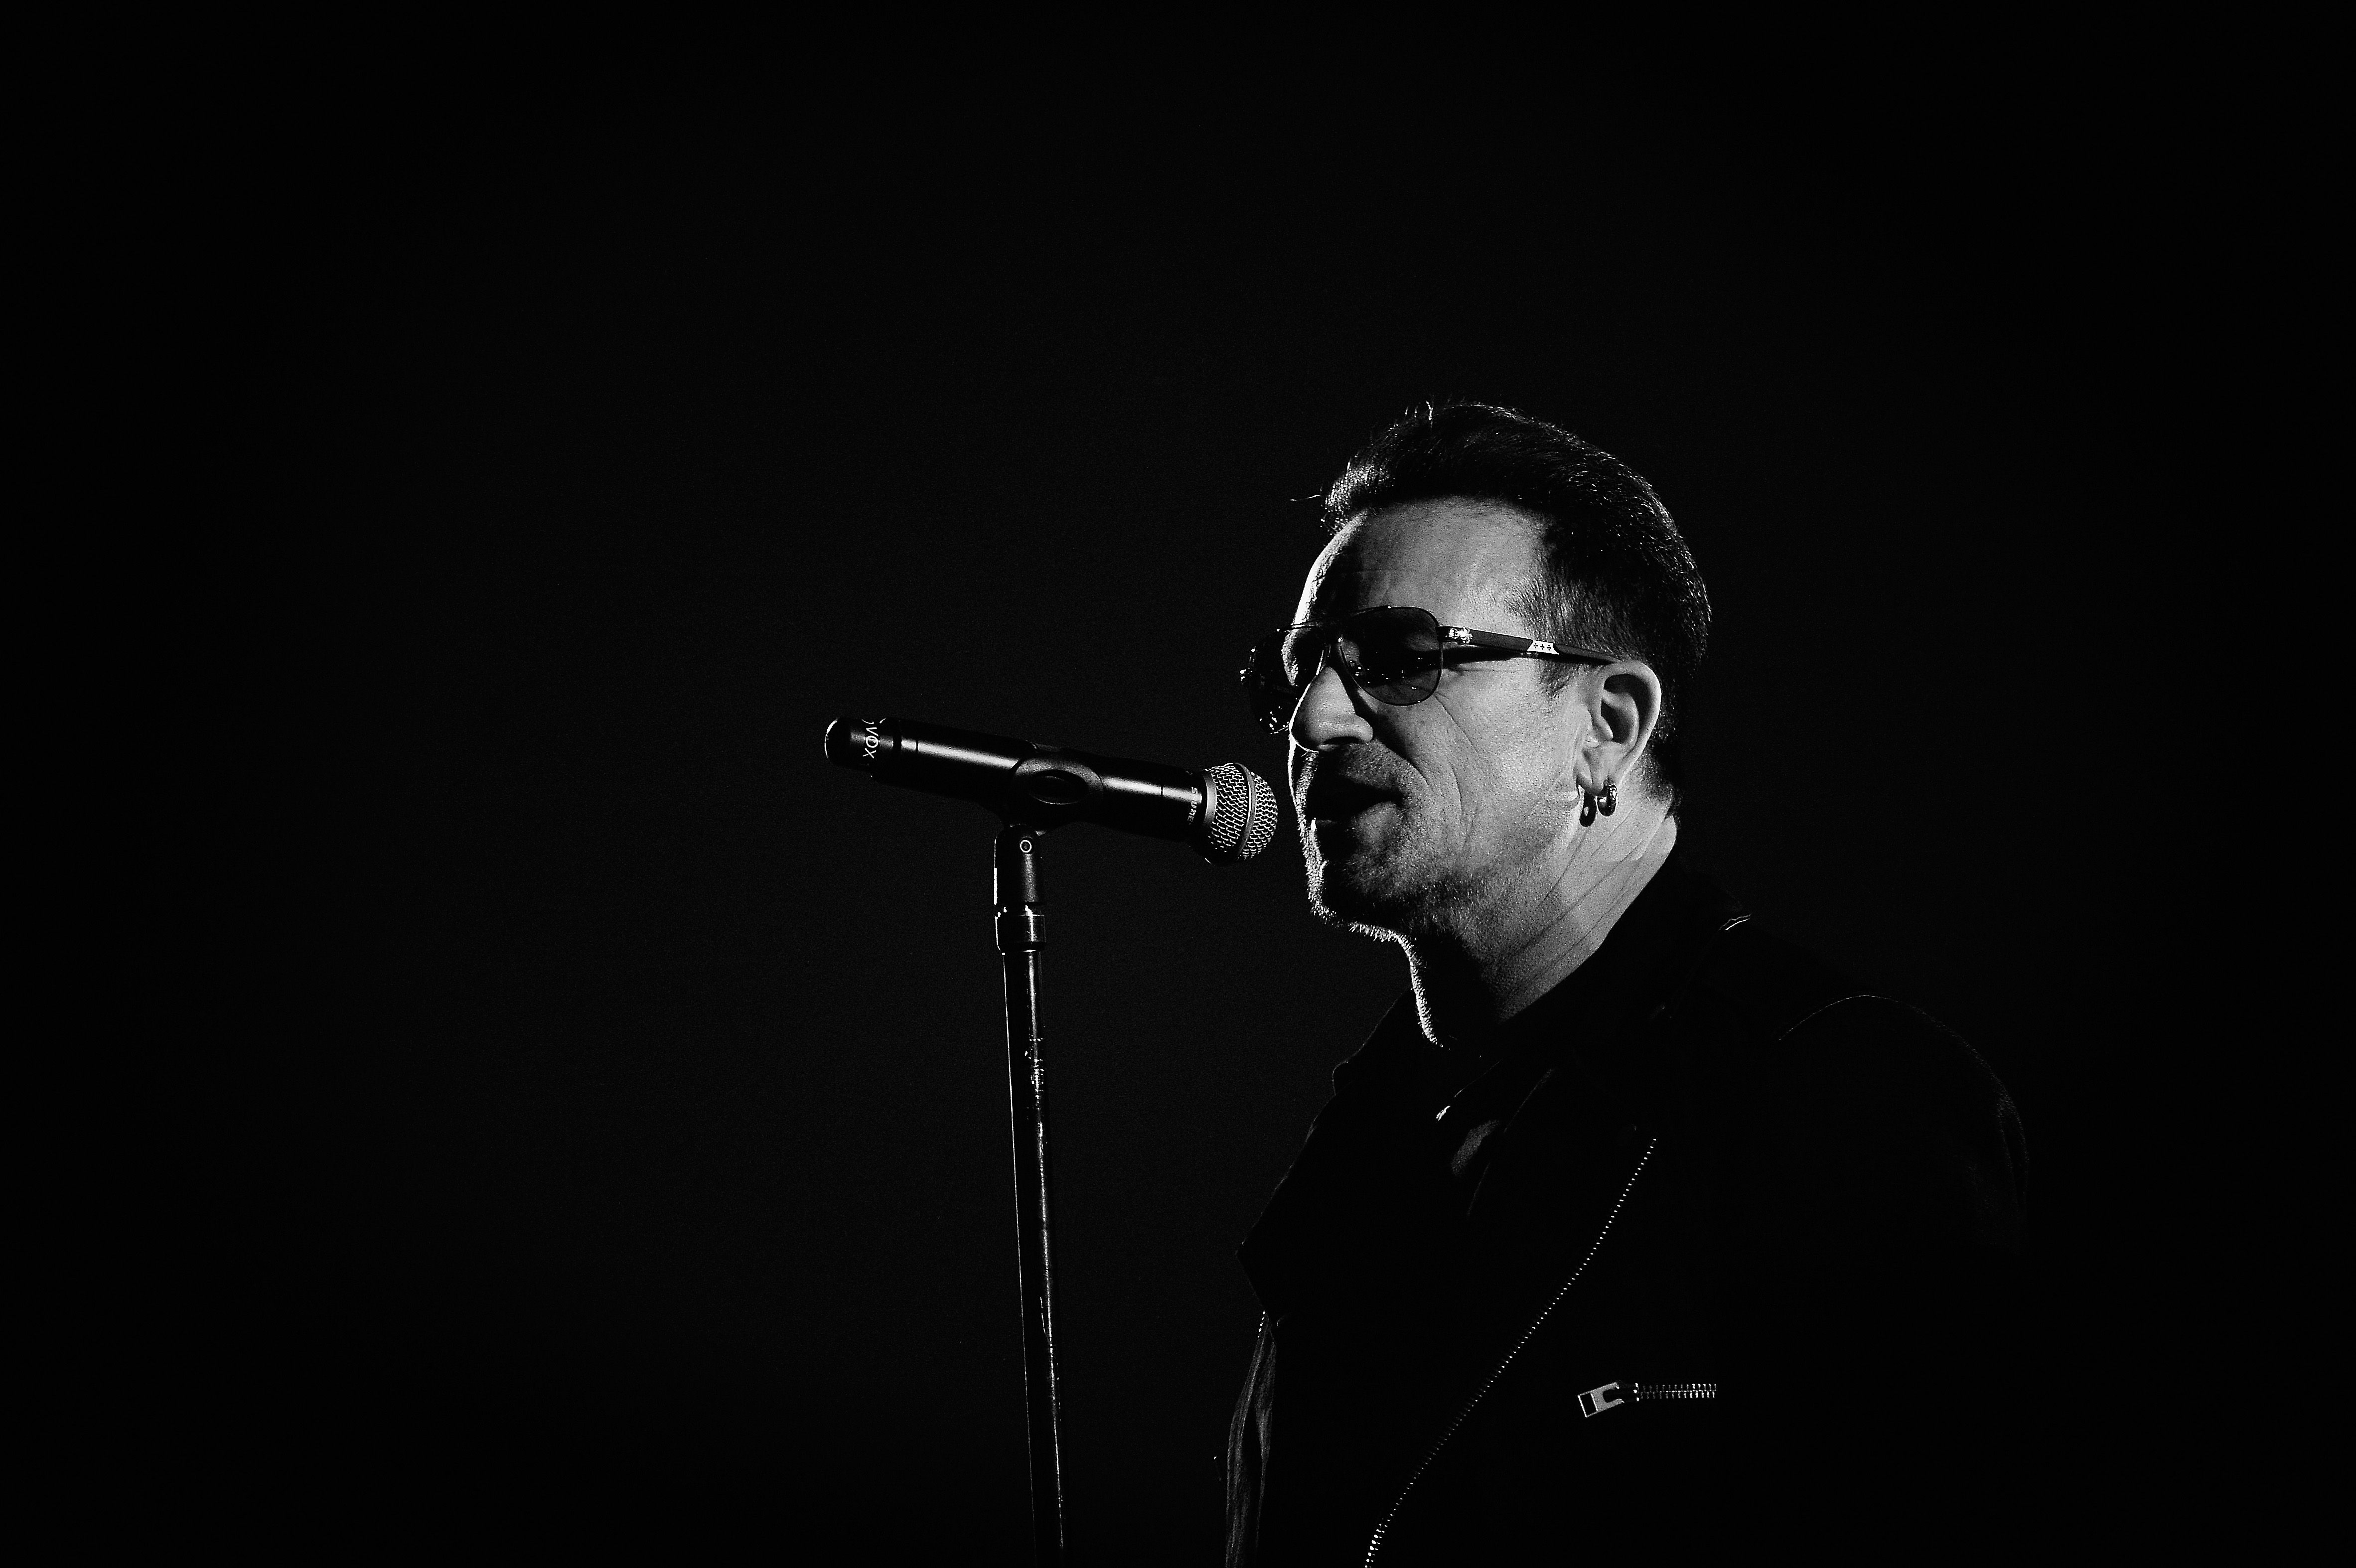 GLASGOW, SCOTLAND - NOVEMBER 09: (EDITORS NOTE: Image has been converted to black and white)  An alternative view of Bono of